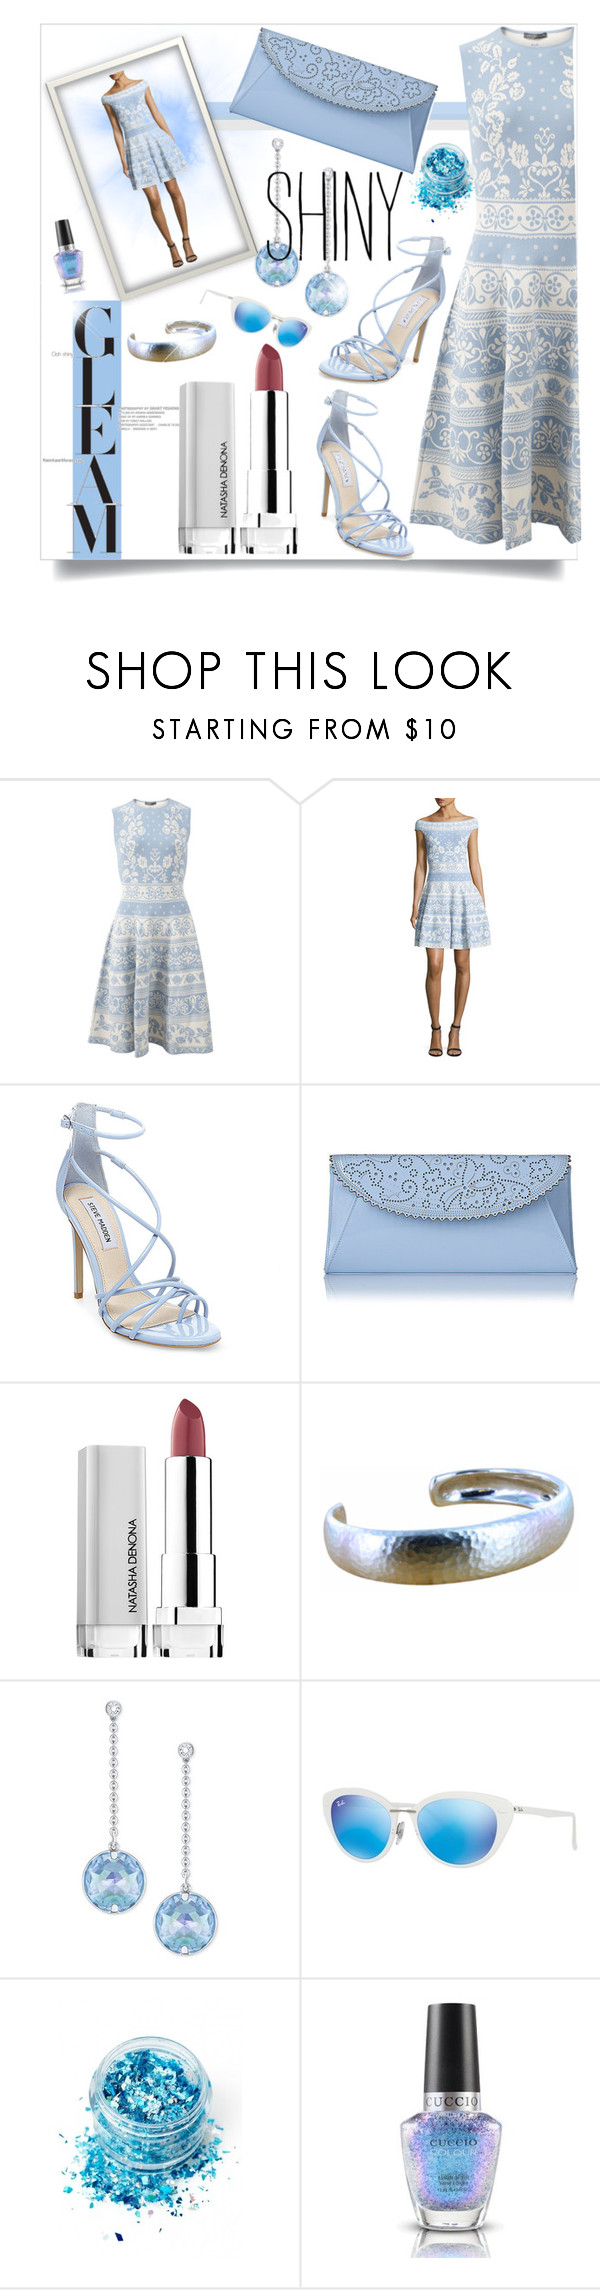 """""""Gleam and Shine"""" by loveroses123 ❤ liked on Polyvore featuring Alexander McQueen, Steve Madden, Swarovski, Ray-Ban and In Your Dreams"""